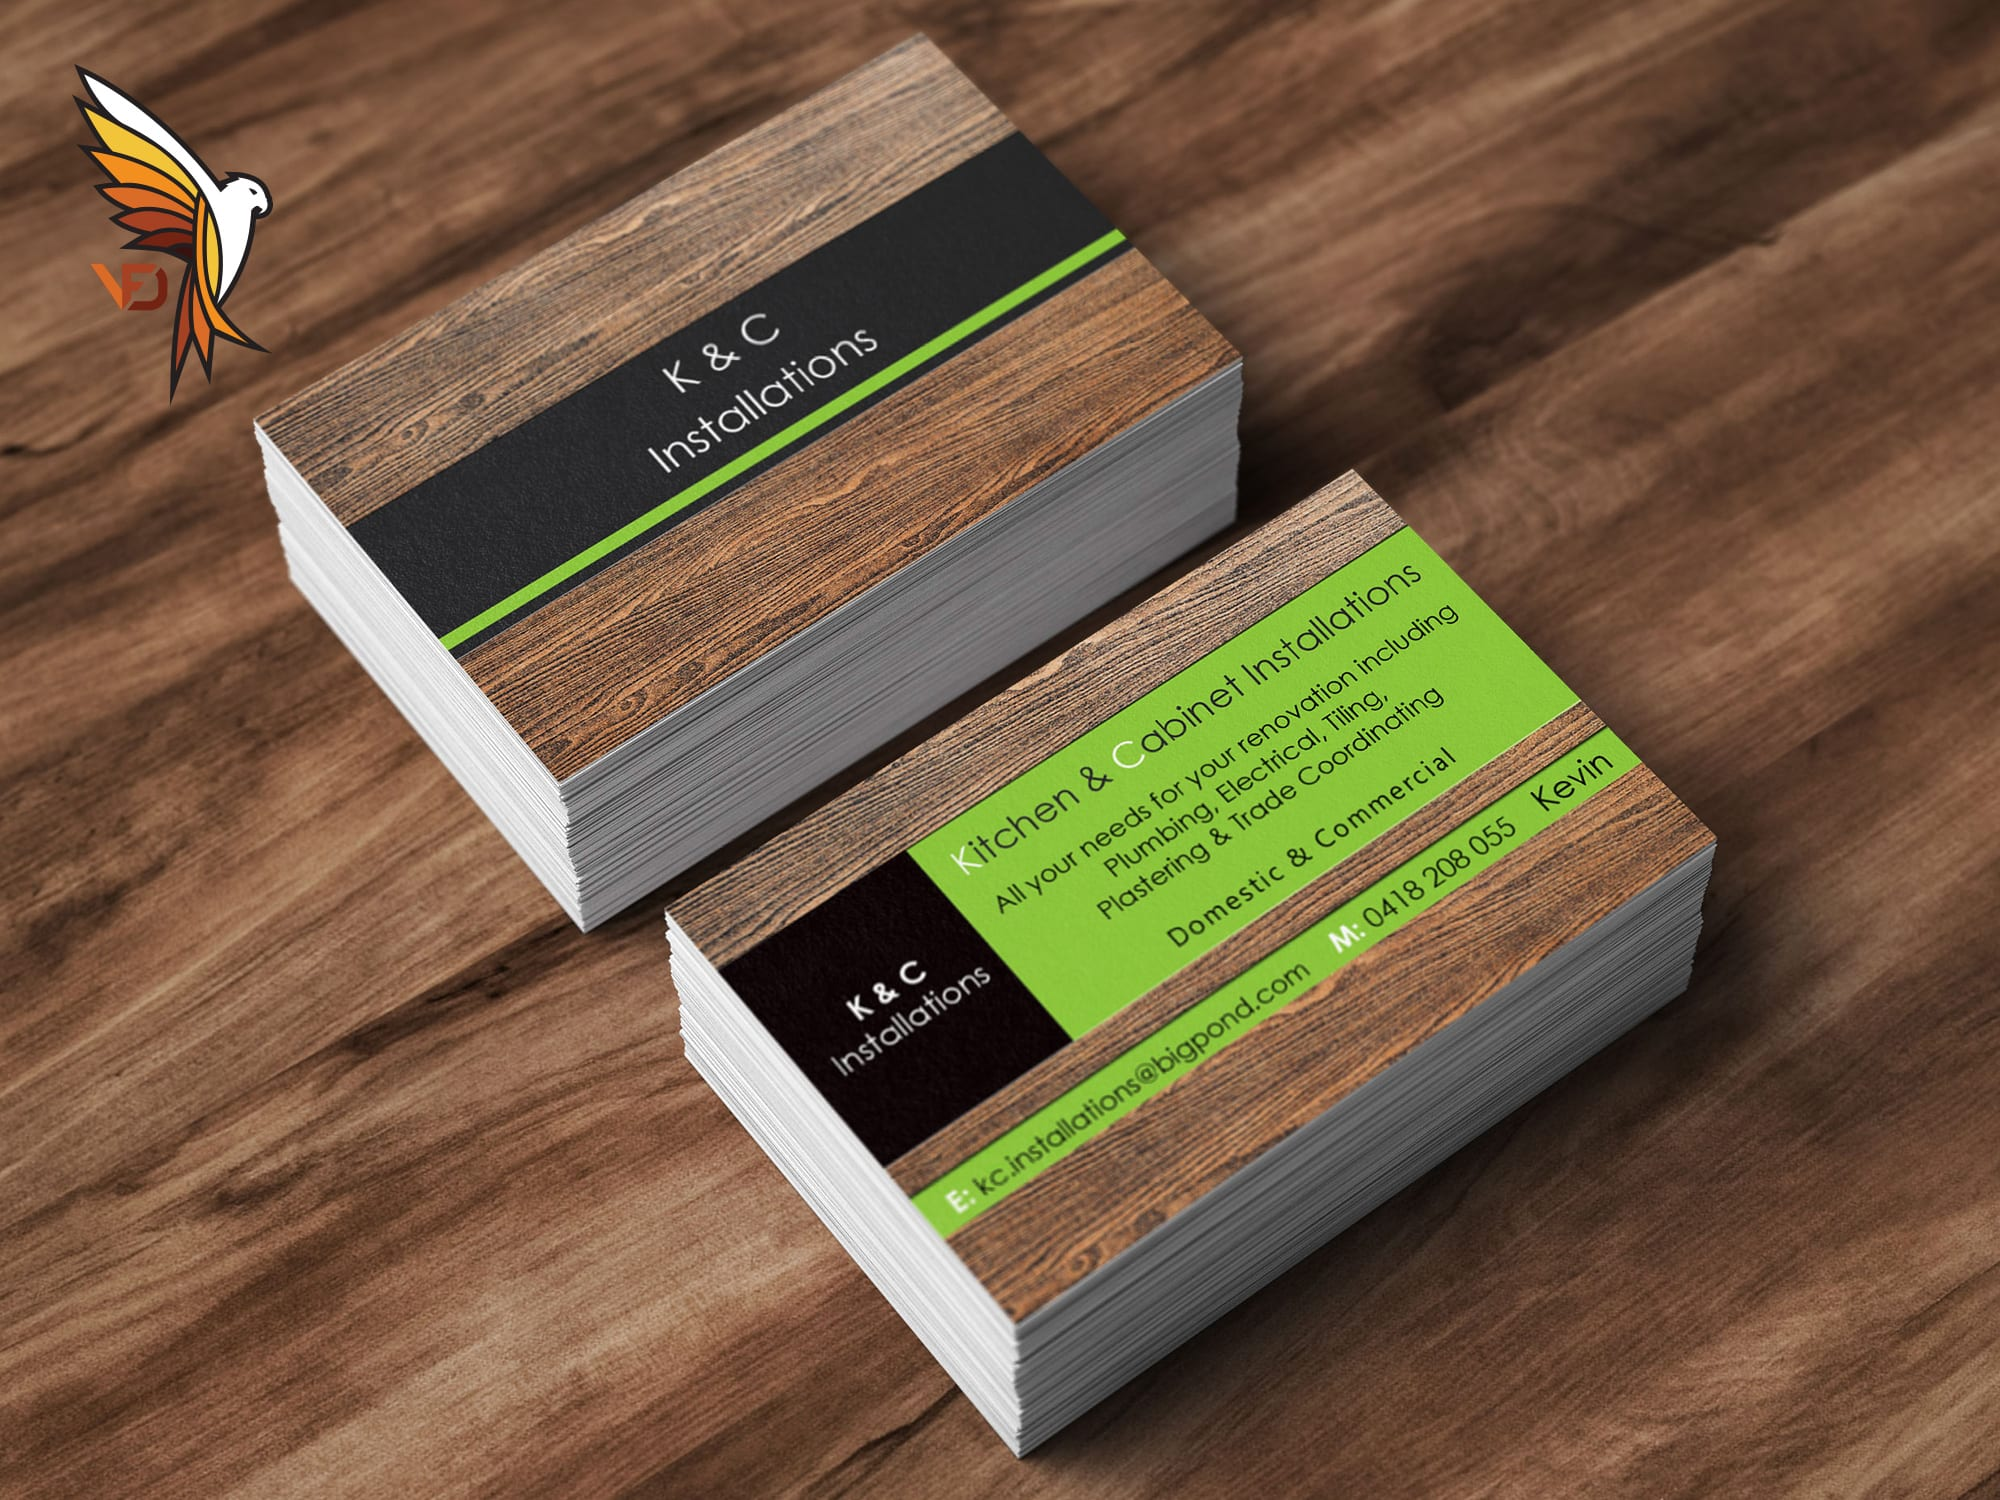 K & C Installations - Business Card